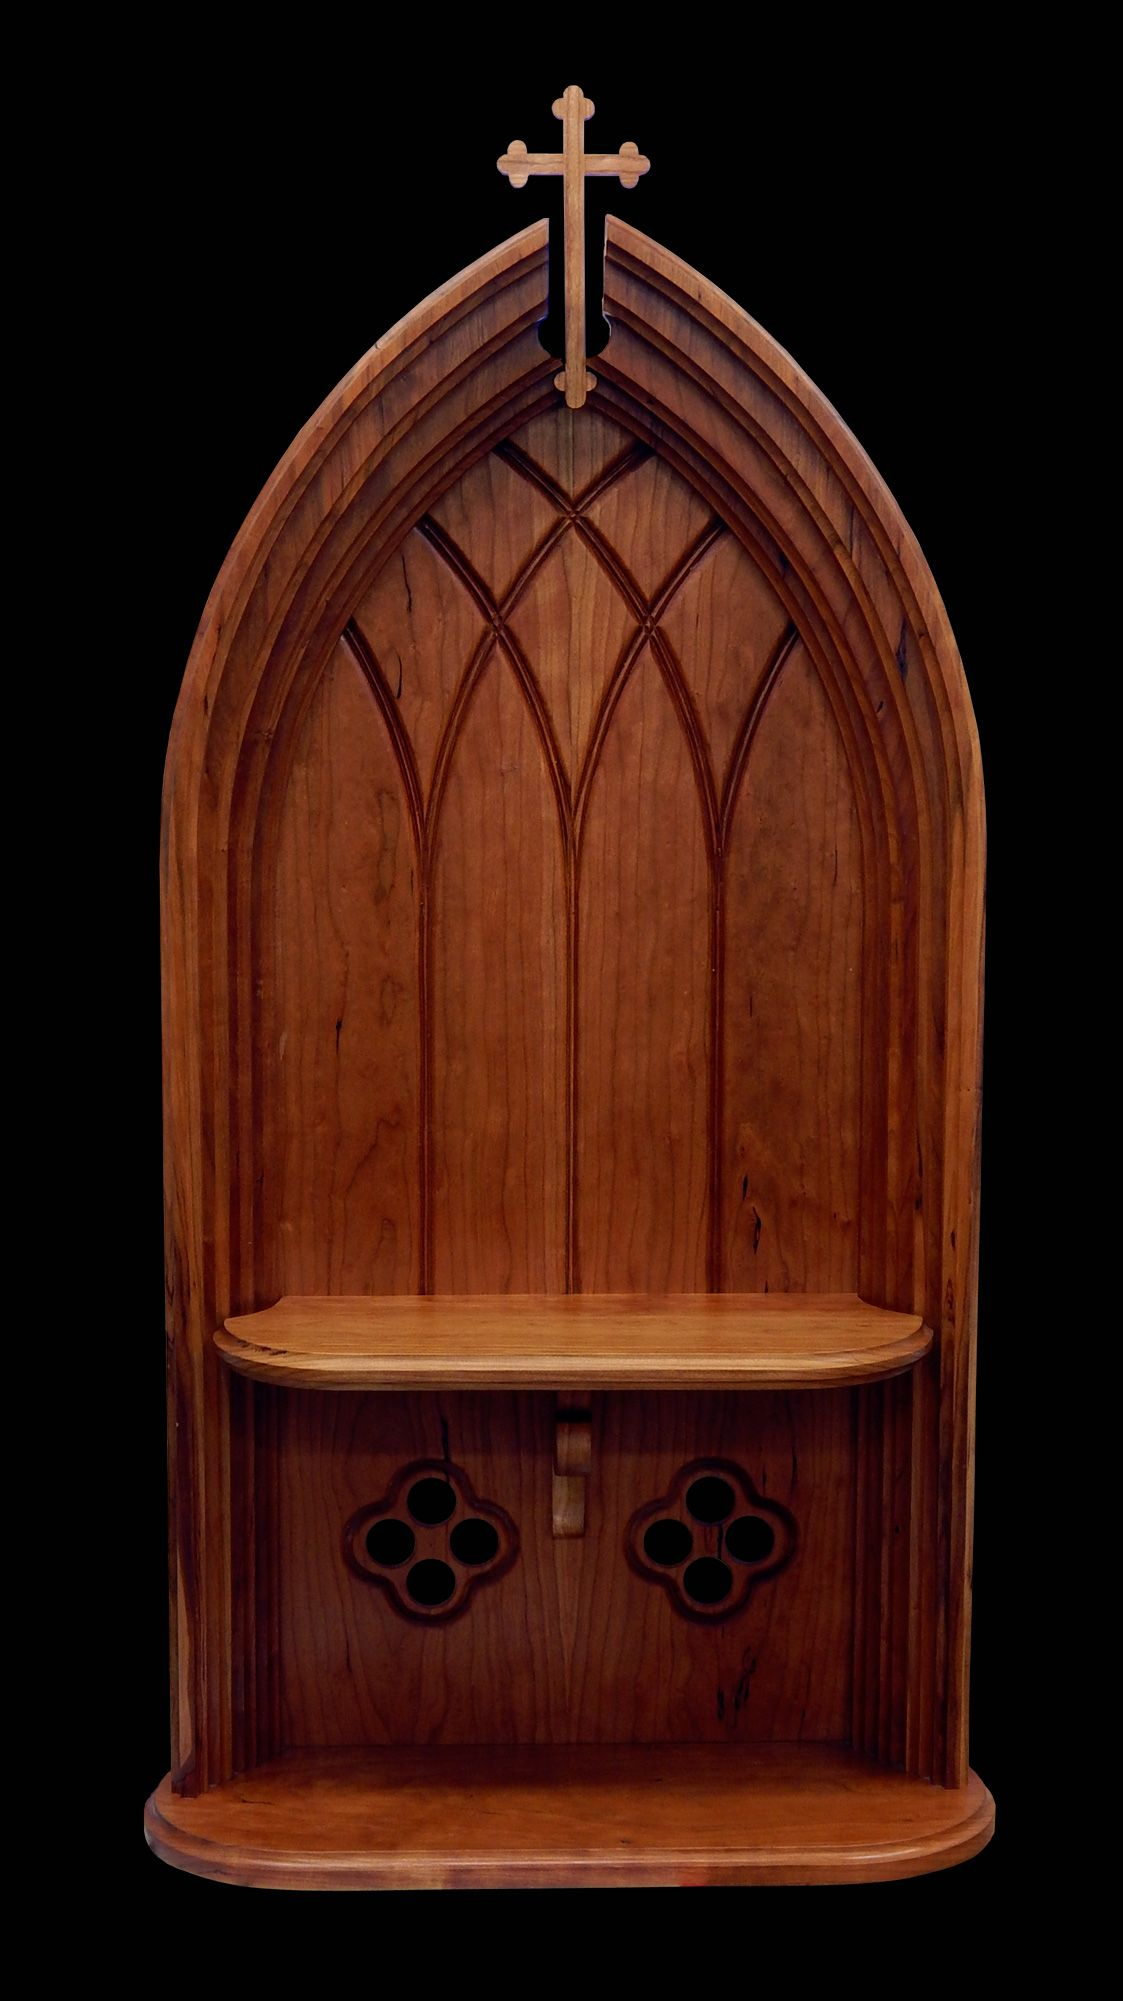 this home altar is freestanding and can be placed on a shelf or bureau a - Wooden Altar And Home Design